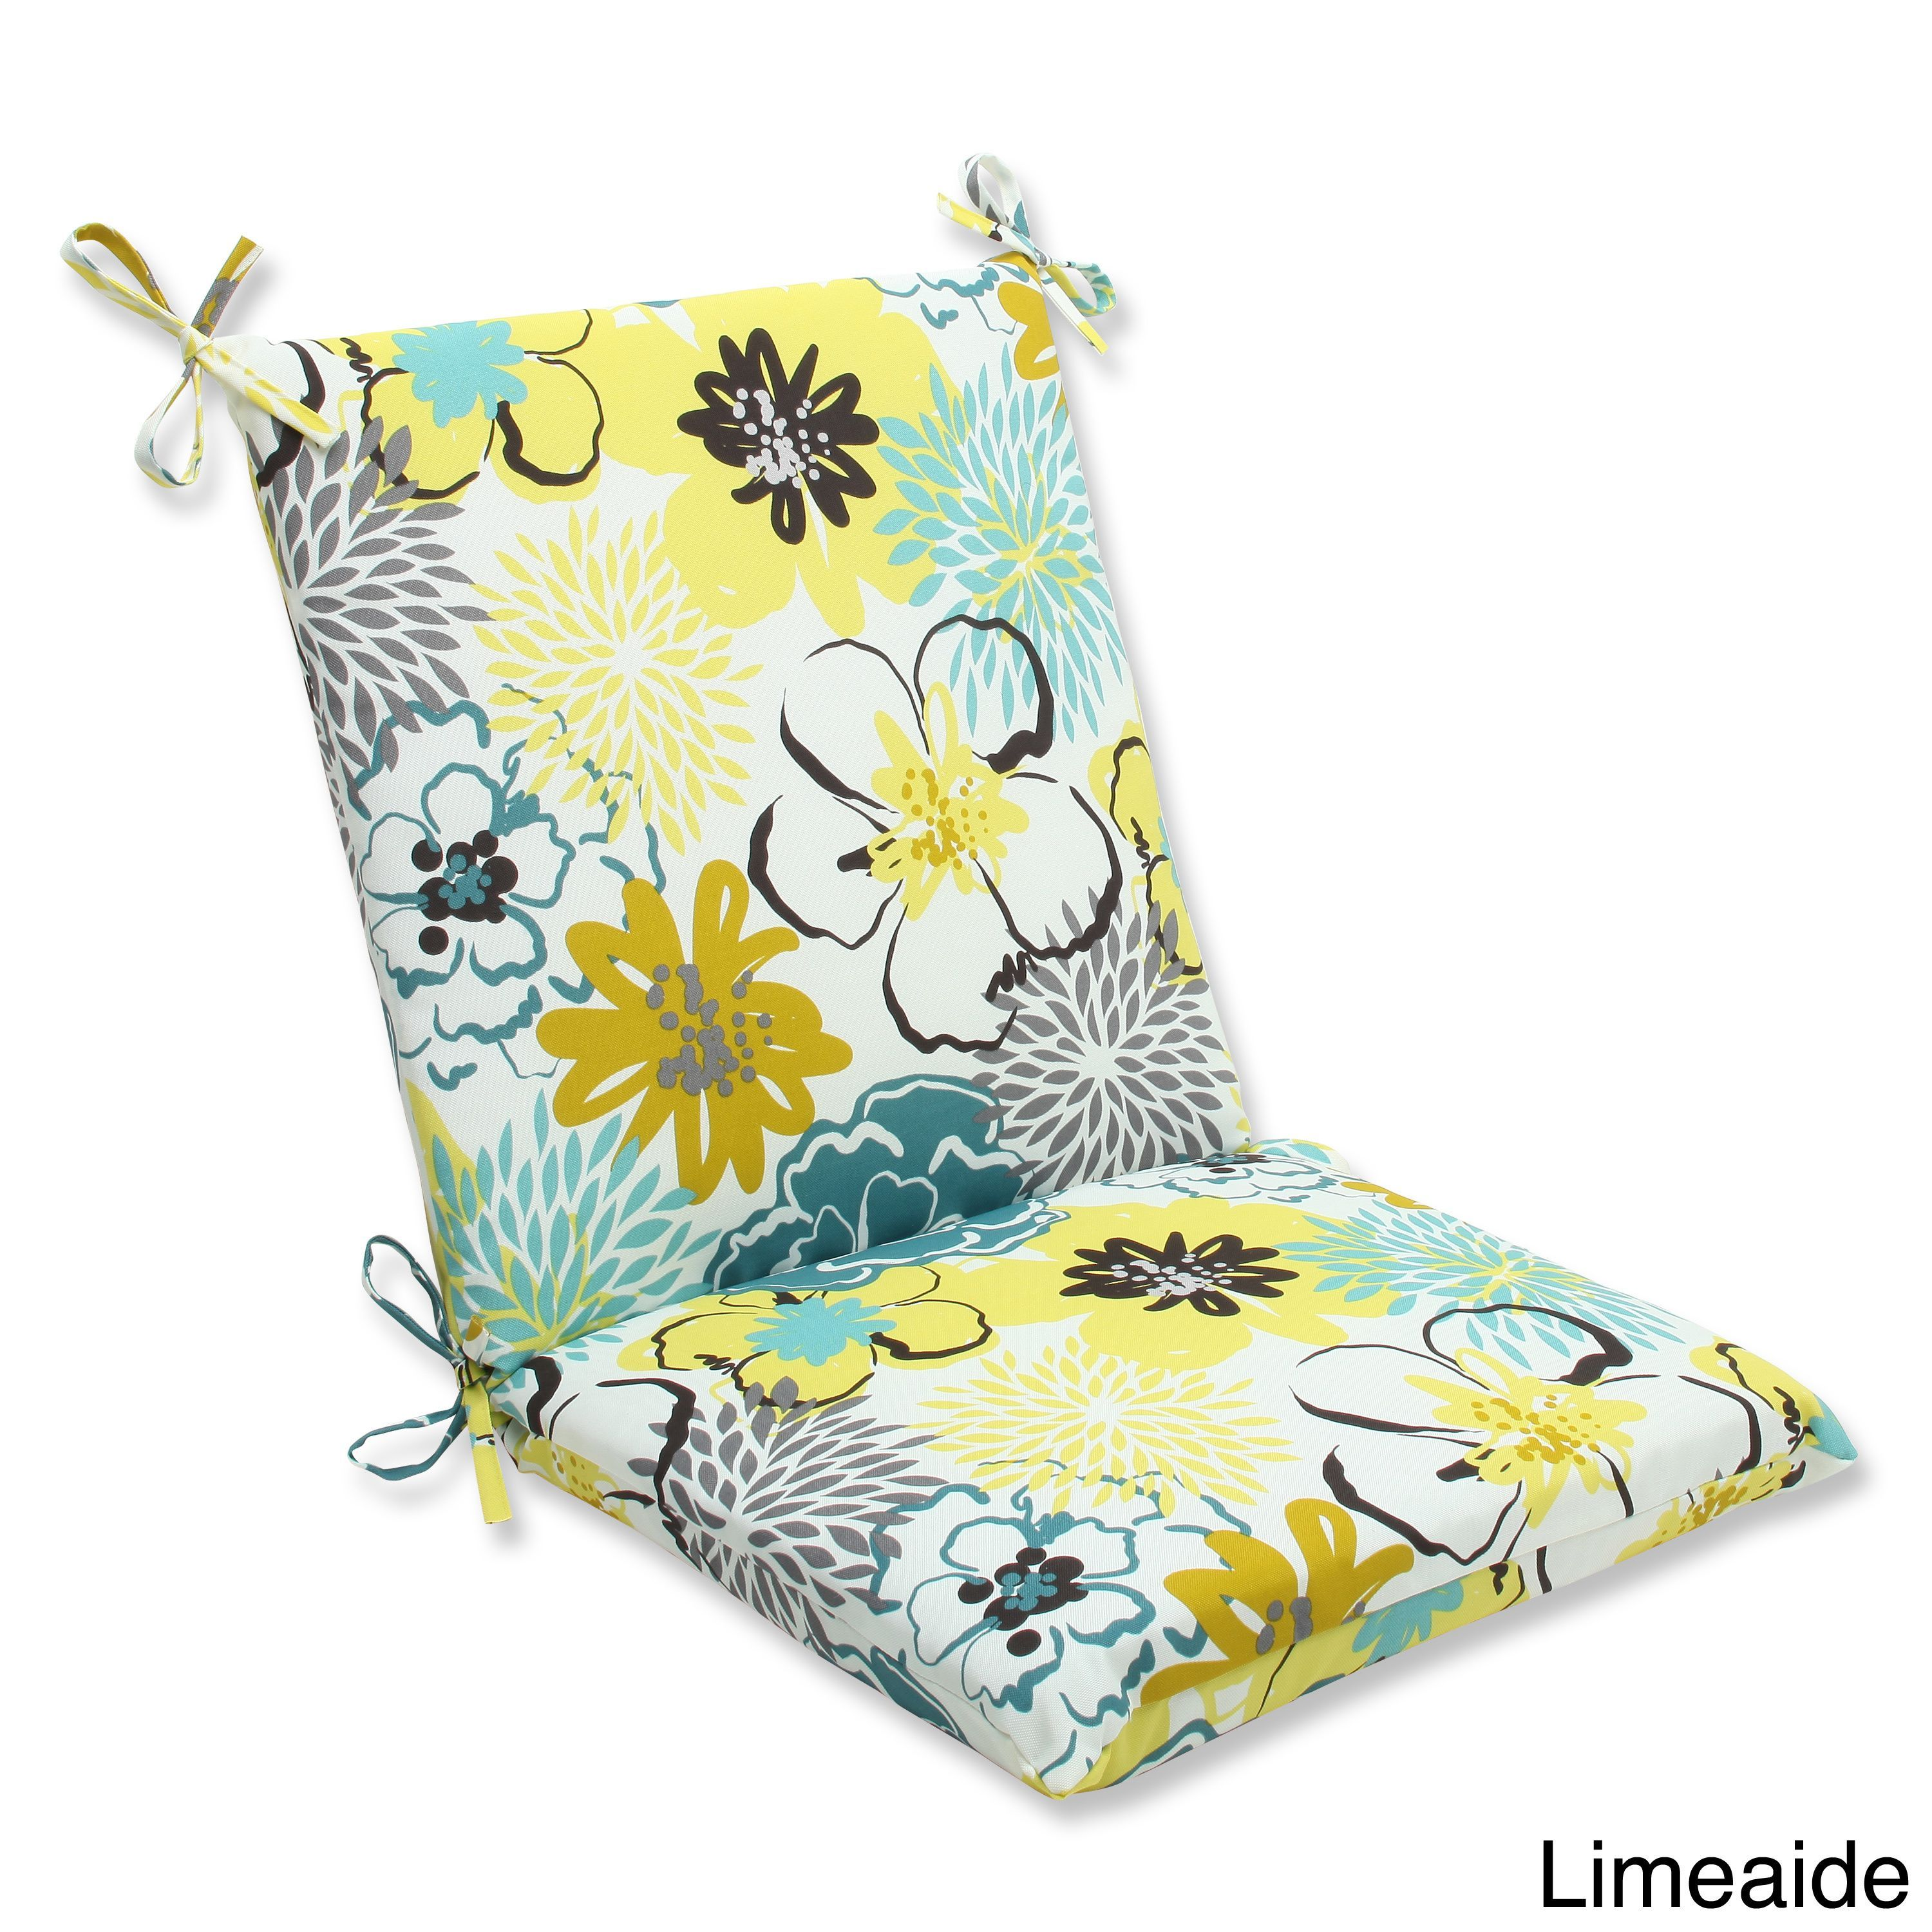 Pillow perfect floral fantasy squared corners chair outdoor cushion